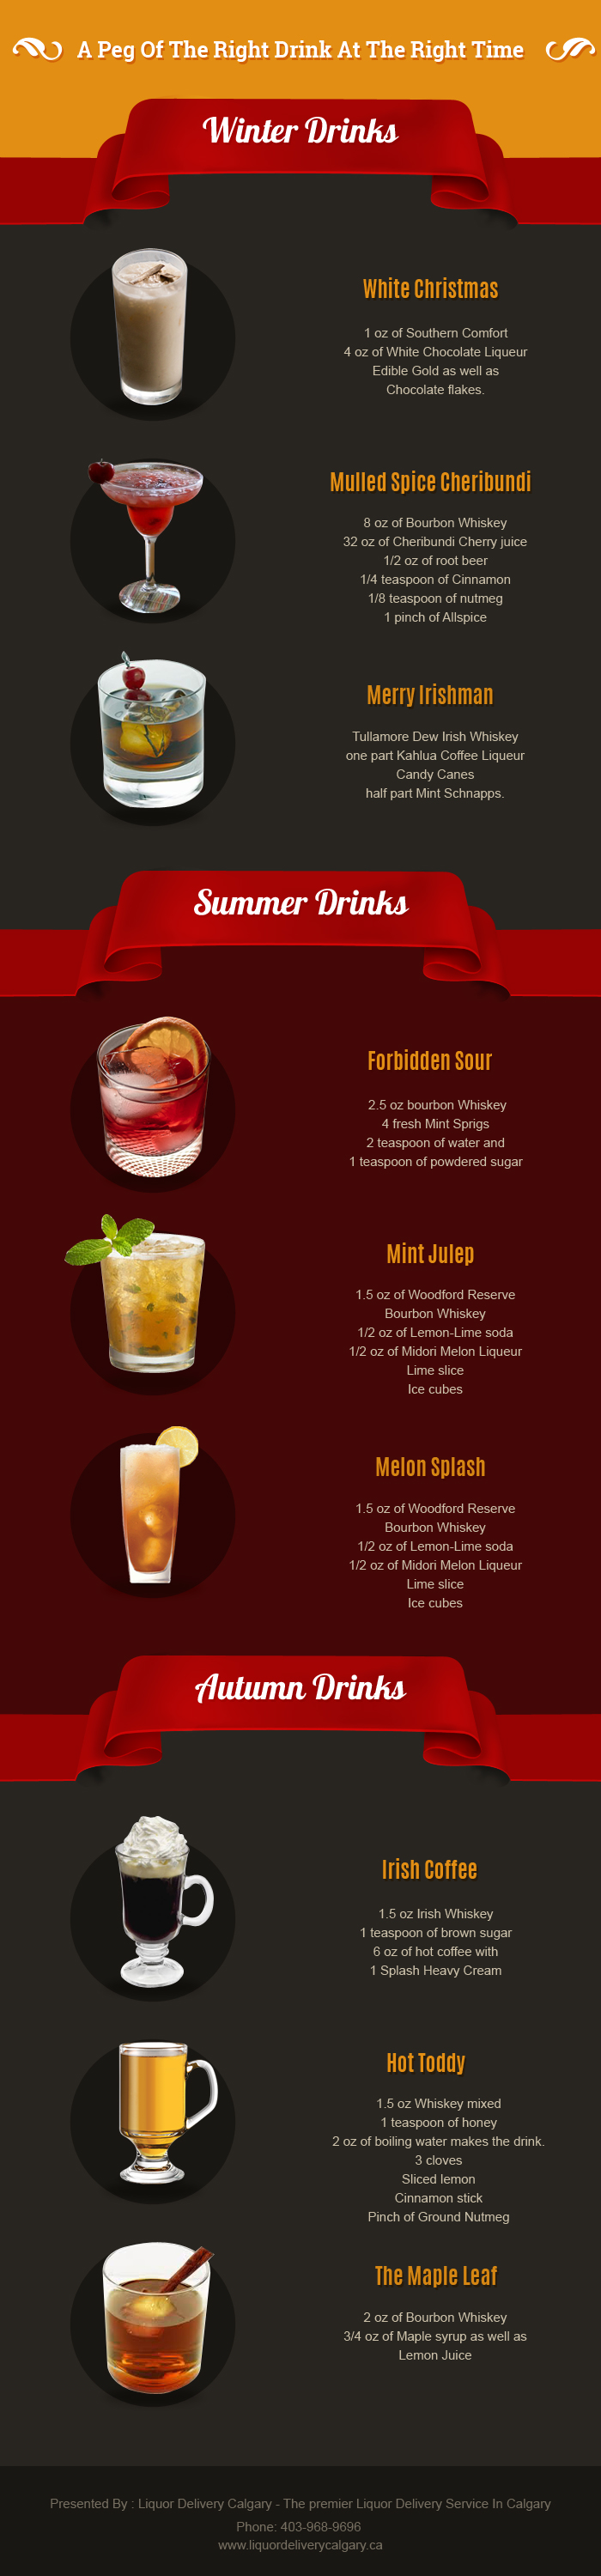 List some exquisite drinks